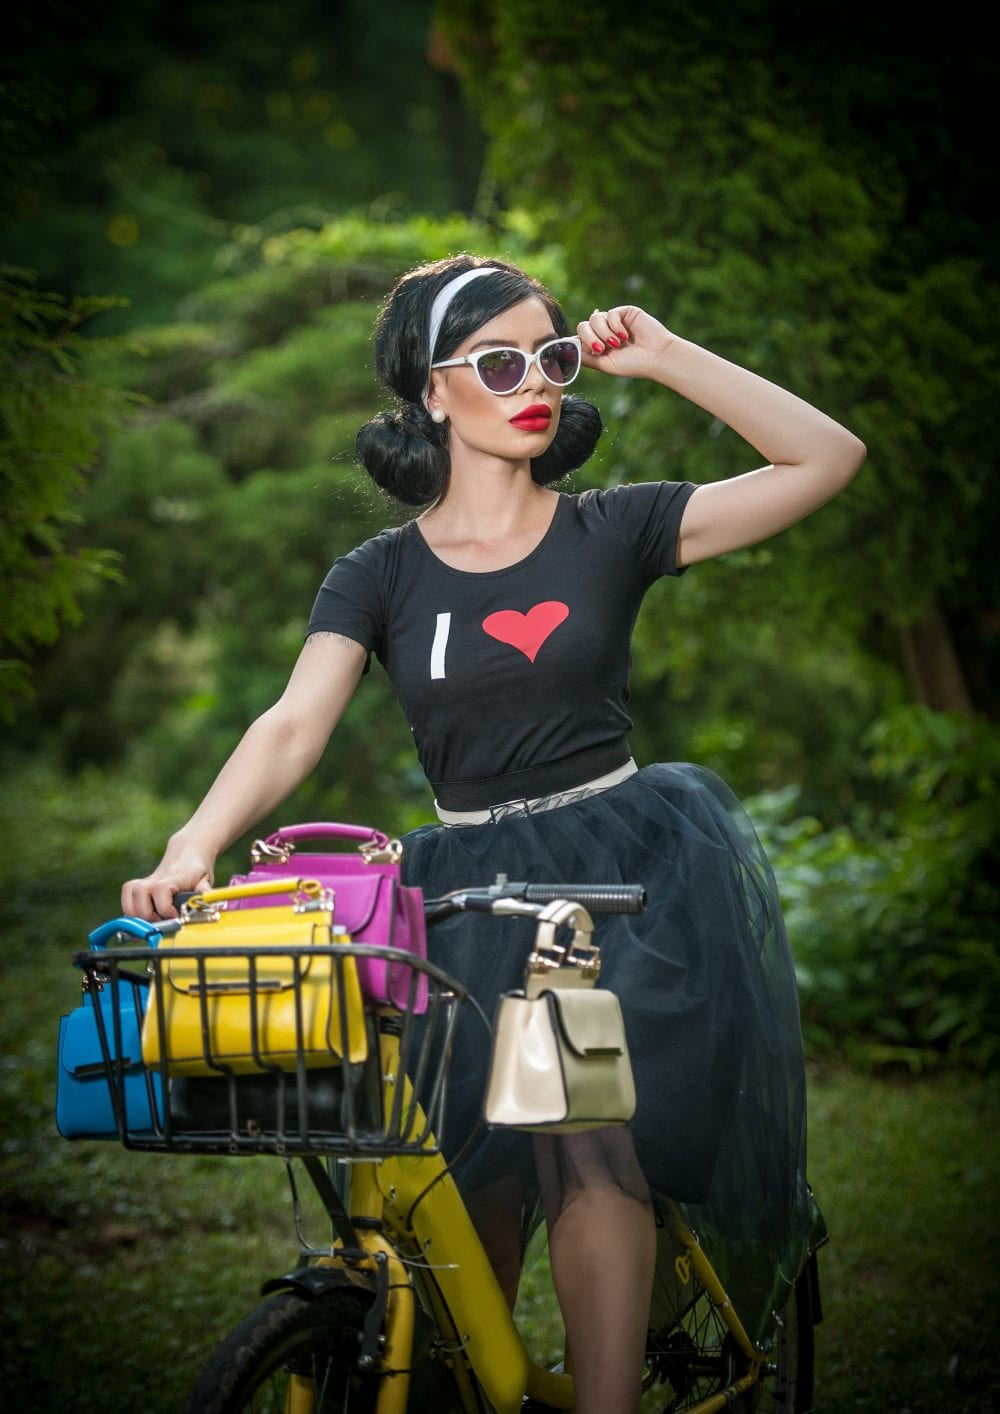 Beautiful girl with retro look wearing a black outfit having fun in park with bicycle. Outdoor lifestyle concept. Vintage scenery. Fashionable brunette with bike and basket with colored purses